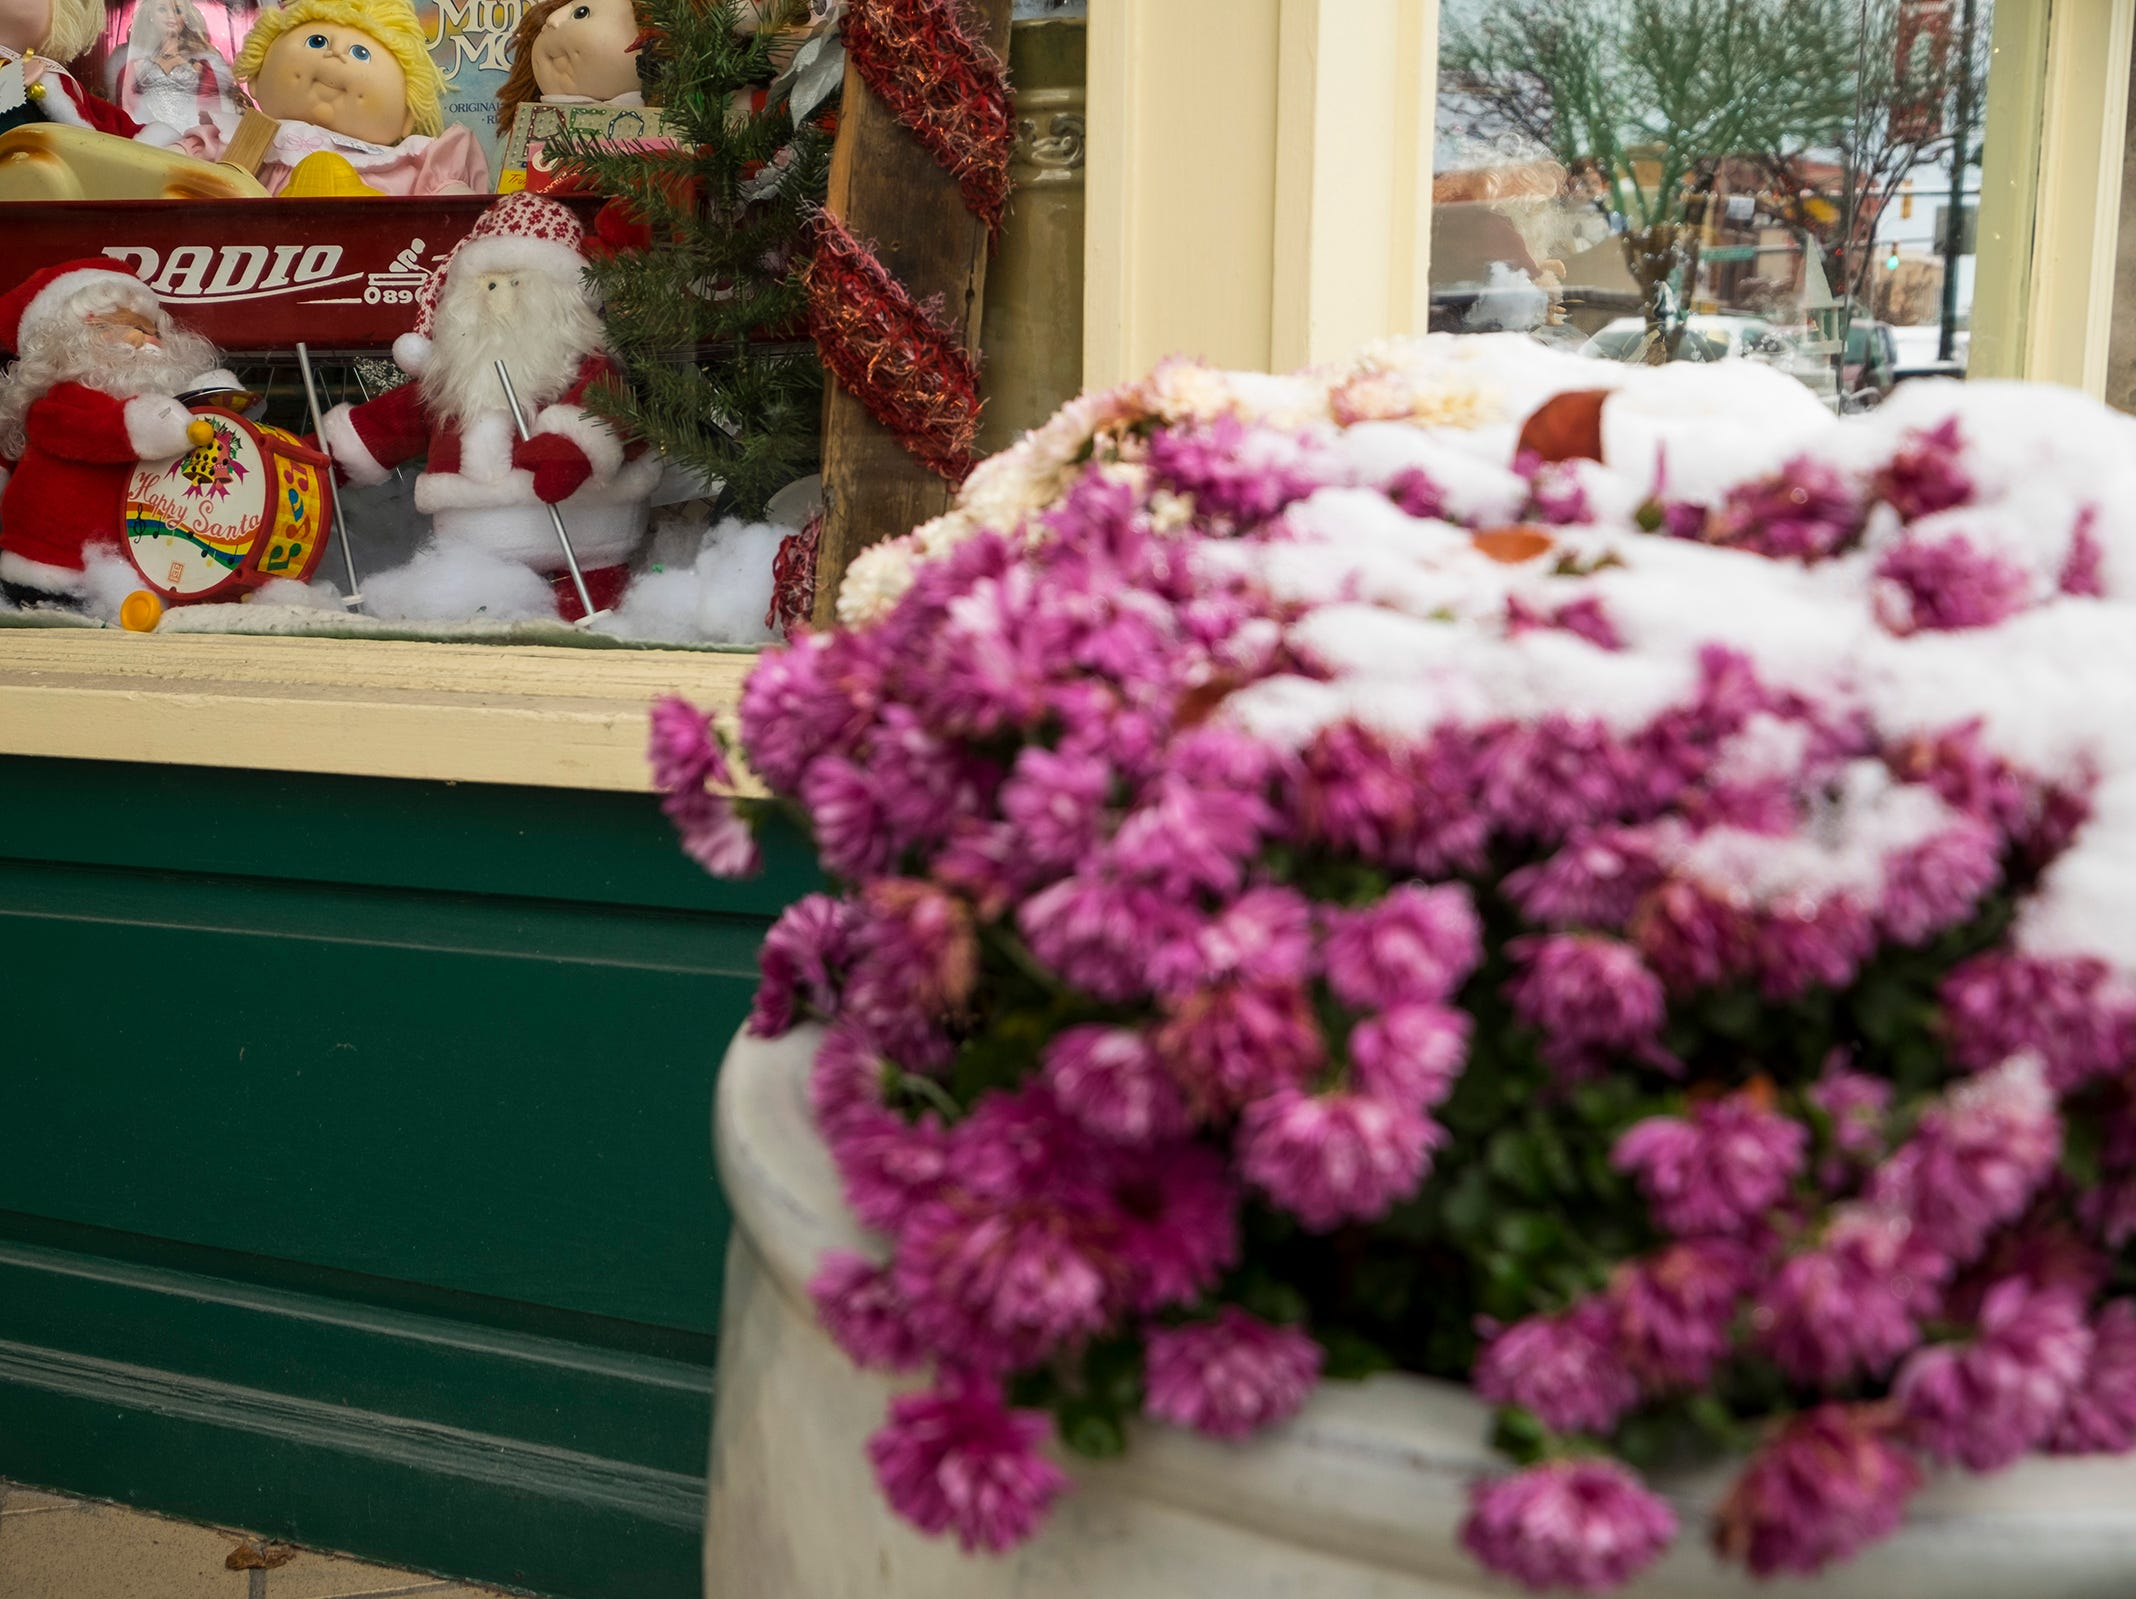 Santa Claus dolls stand in fake snow inside the window of a downtown Port Huron store Tuesday, Nov. 13, 2018.